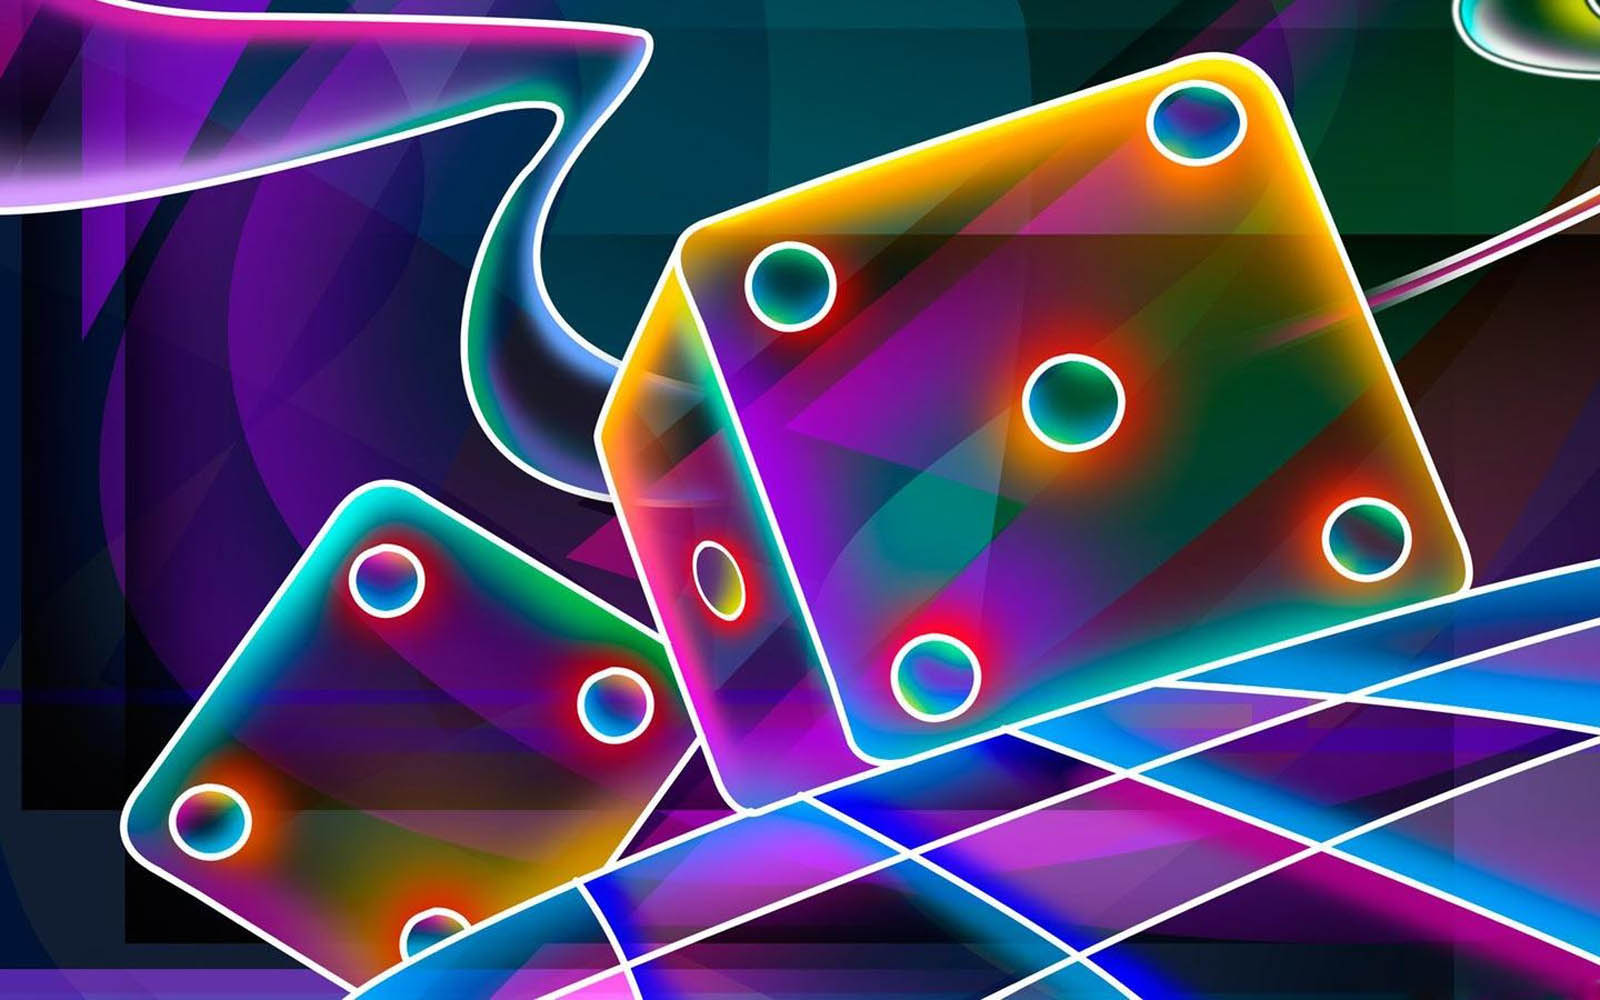 tag neon art wallpapers - photo #4